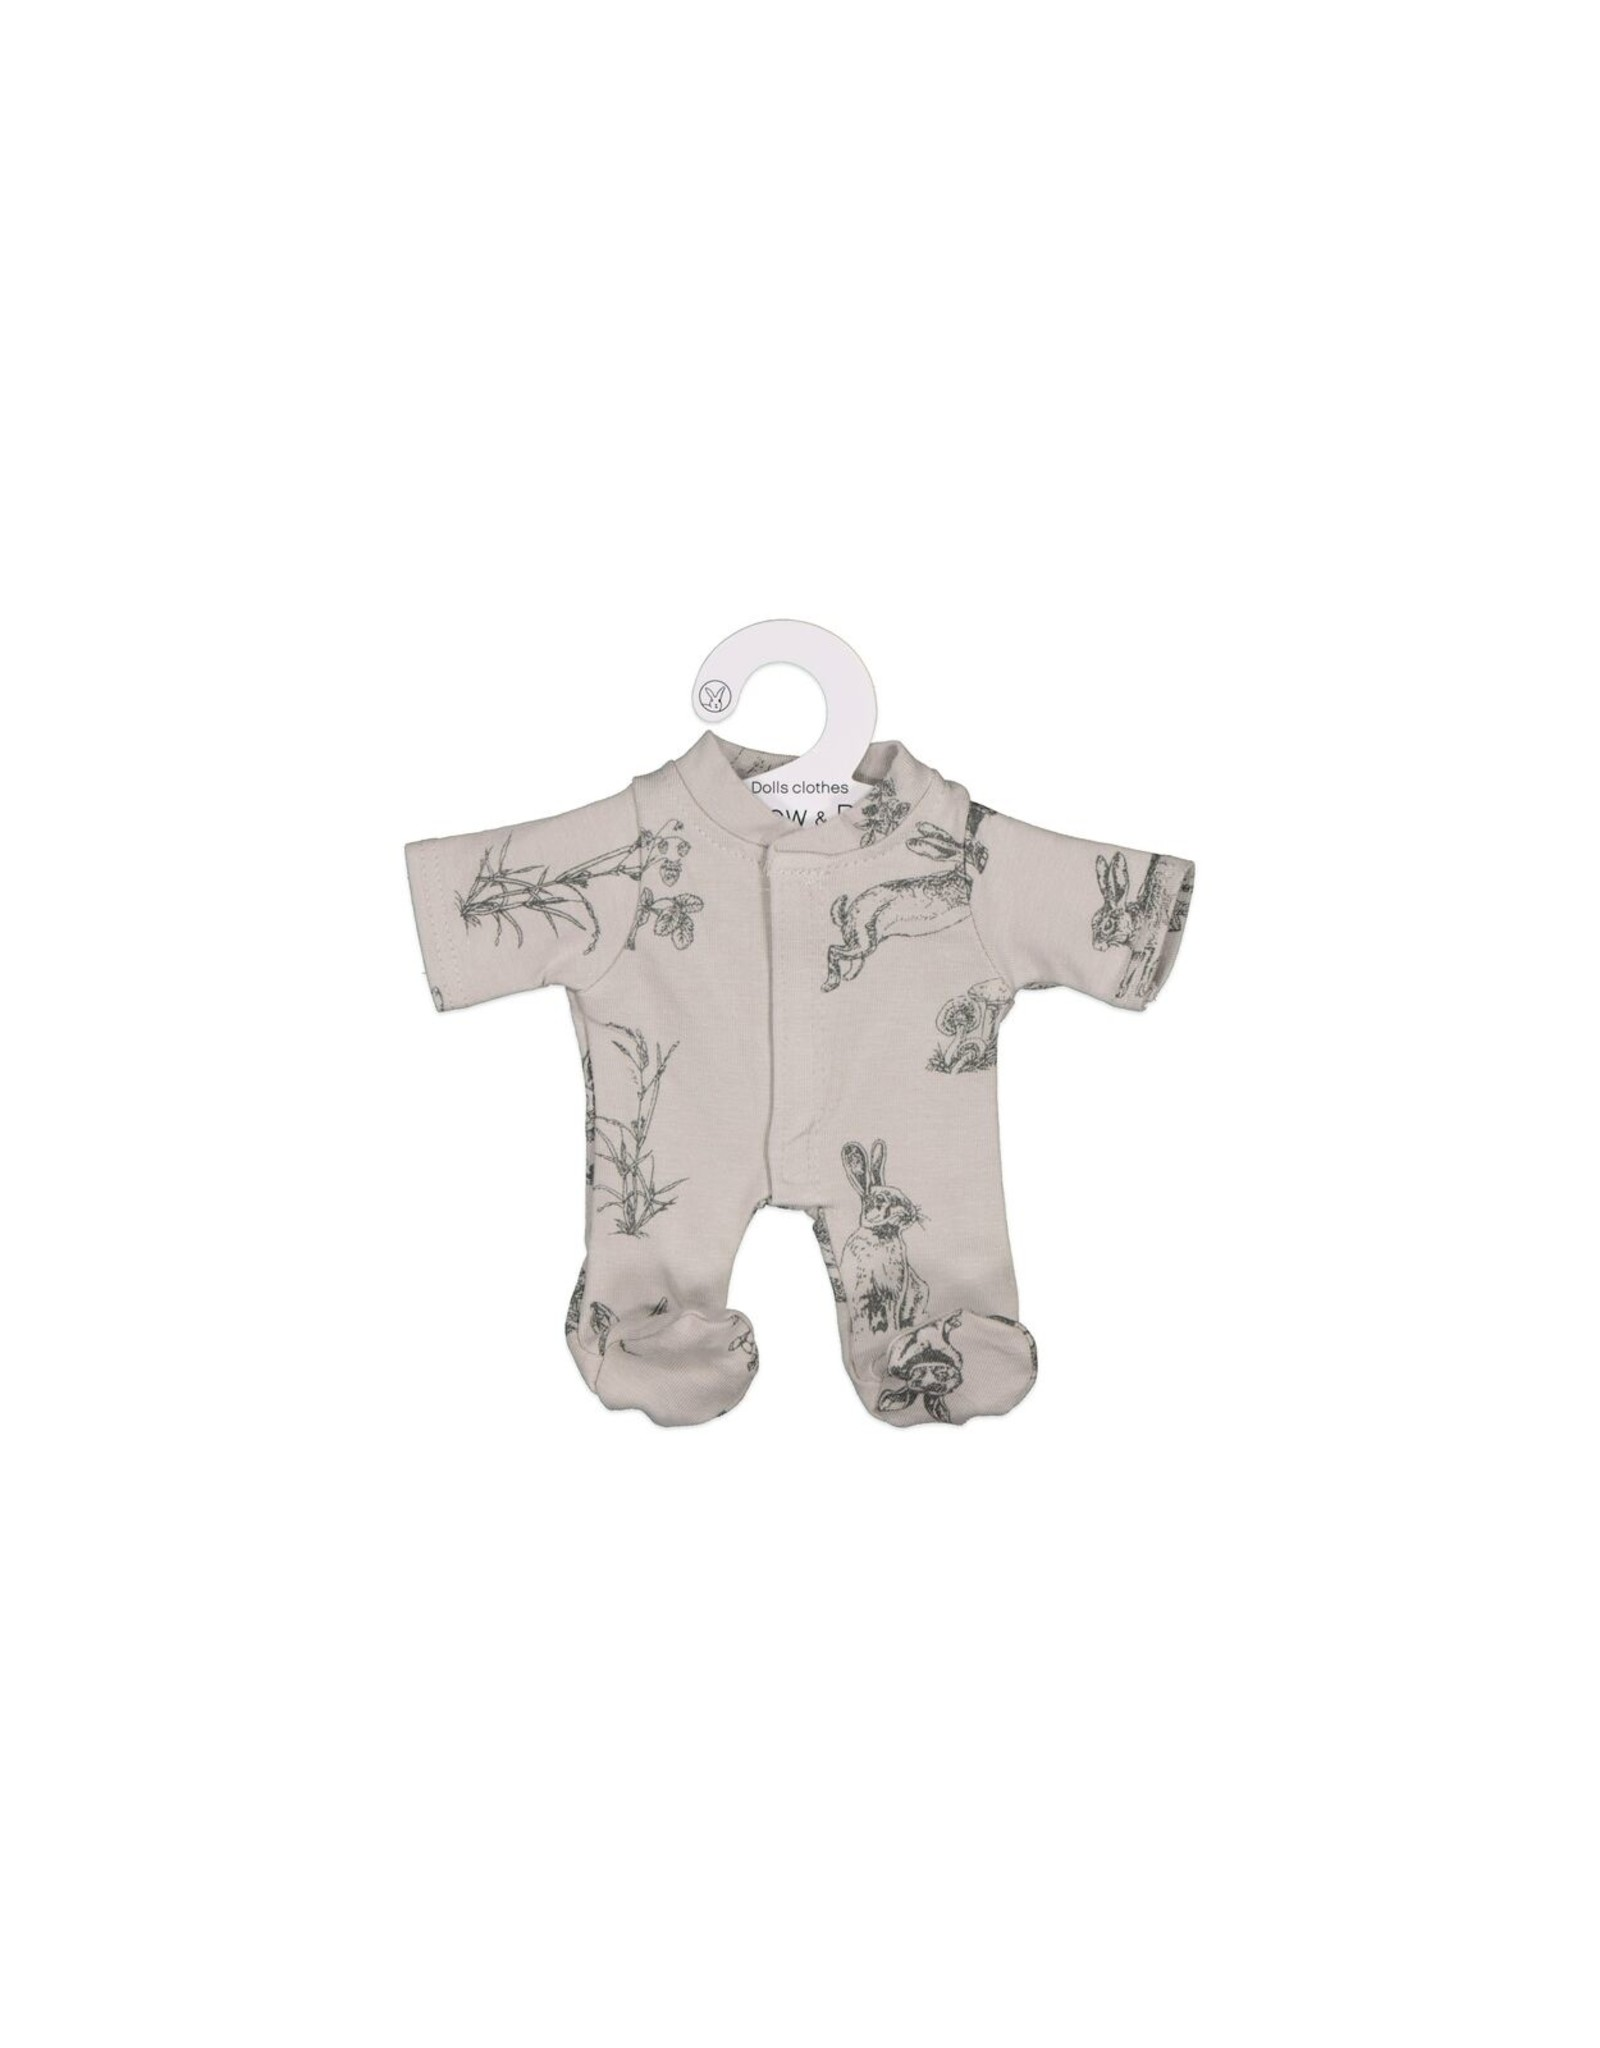 Burrow & Be Burrow & Be - Grey Burrowers Doll Jumpsuit 21cm